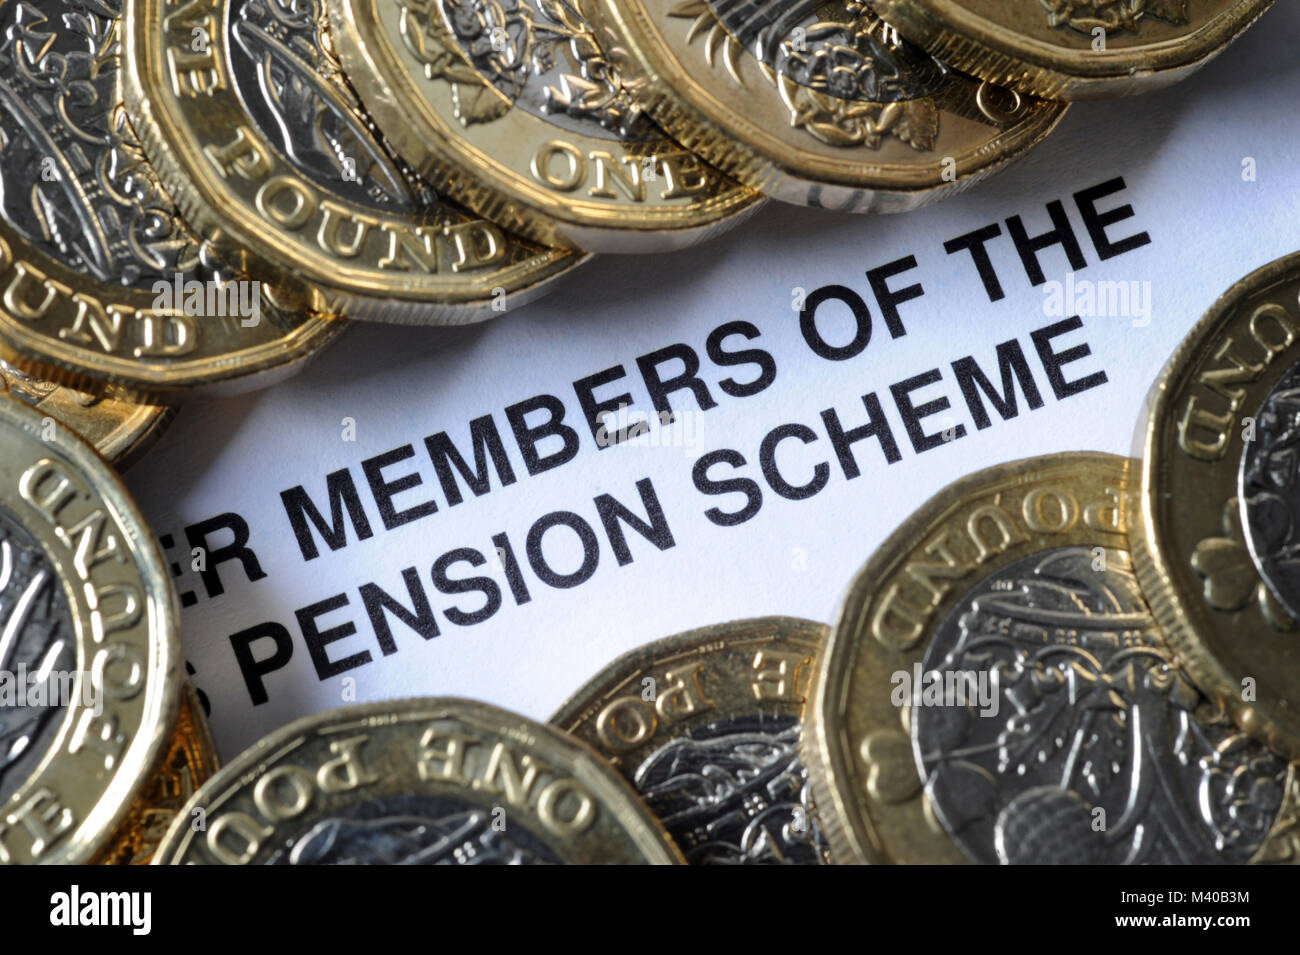 COMPANY PENSION SCHEME LITERATURE WITH ONE POUND COINS RE PENSIONS RETIREMENT PENSIONERS ETC UK - Stock Image